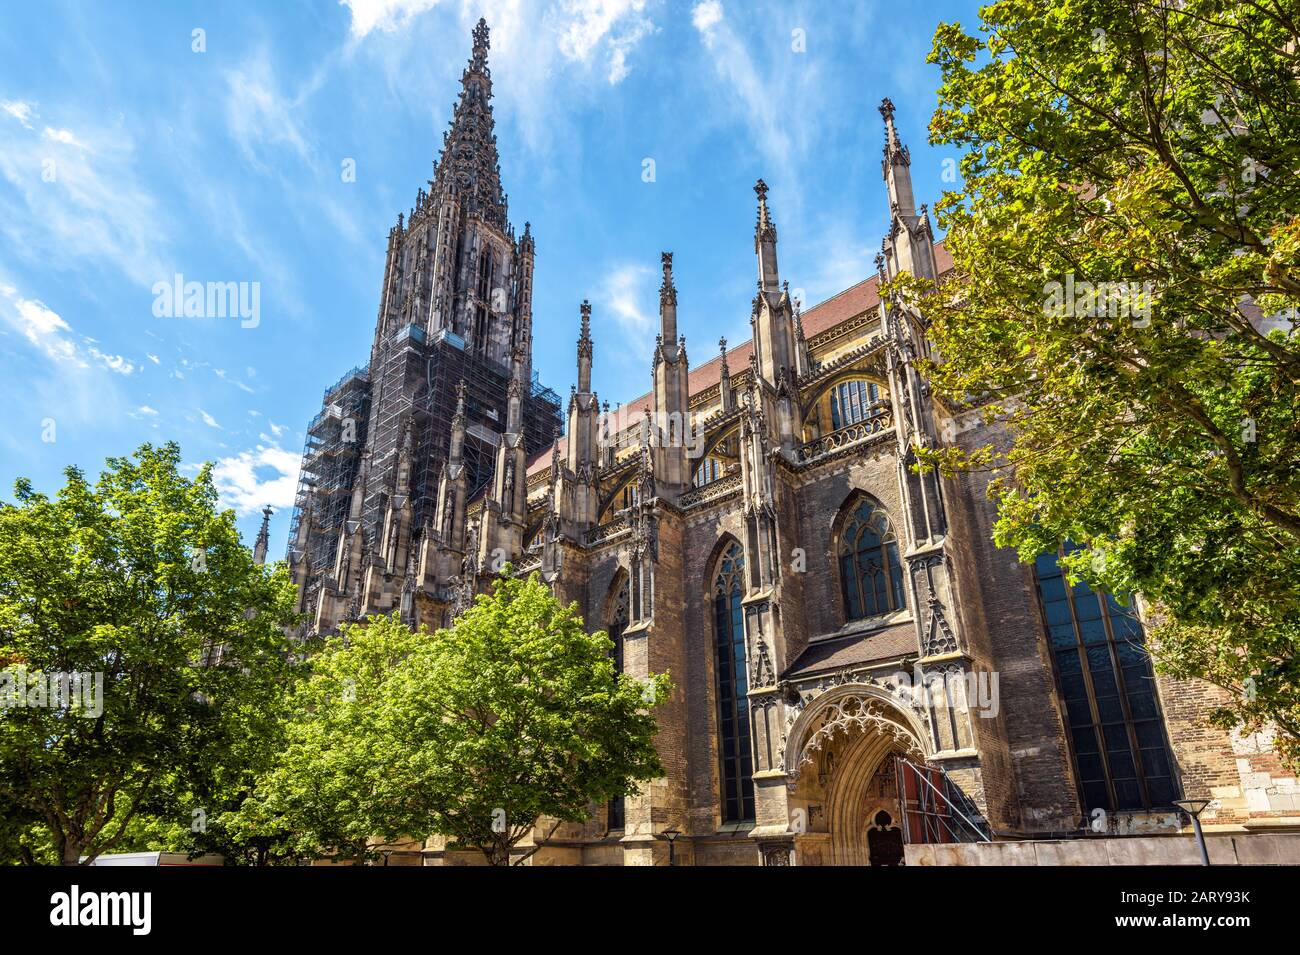 Ulm Minster or Cathedral of Ulm city, Germany. It is a famous landmark of Ulm. Panorama of ornate facade of Gothic church in summer. Scenery of mediev Stock Photo